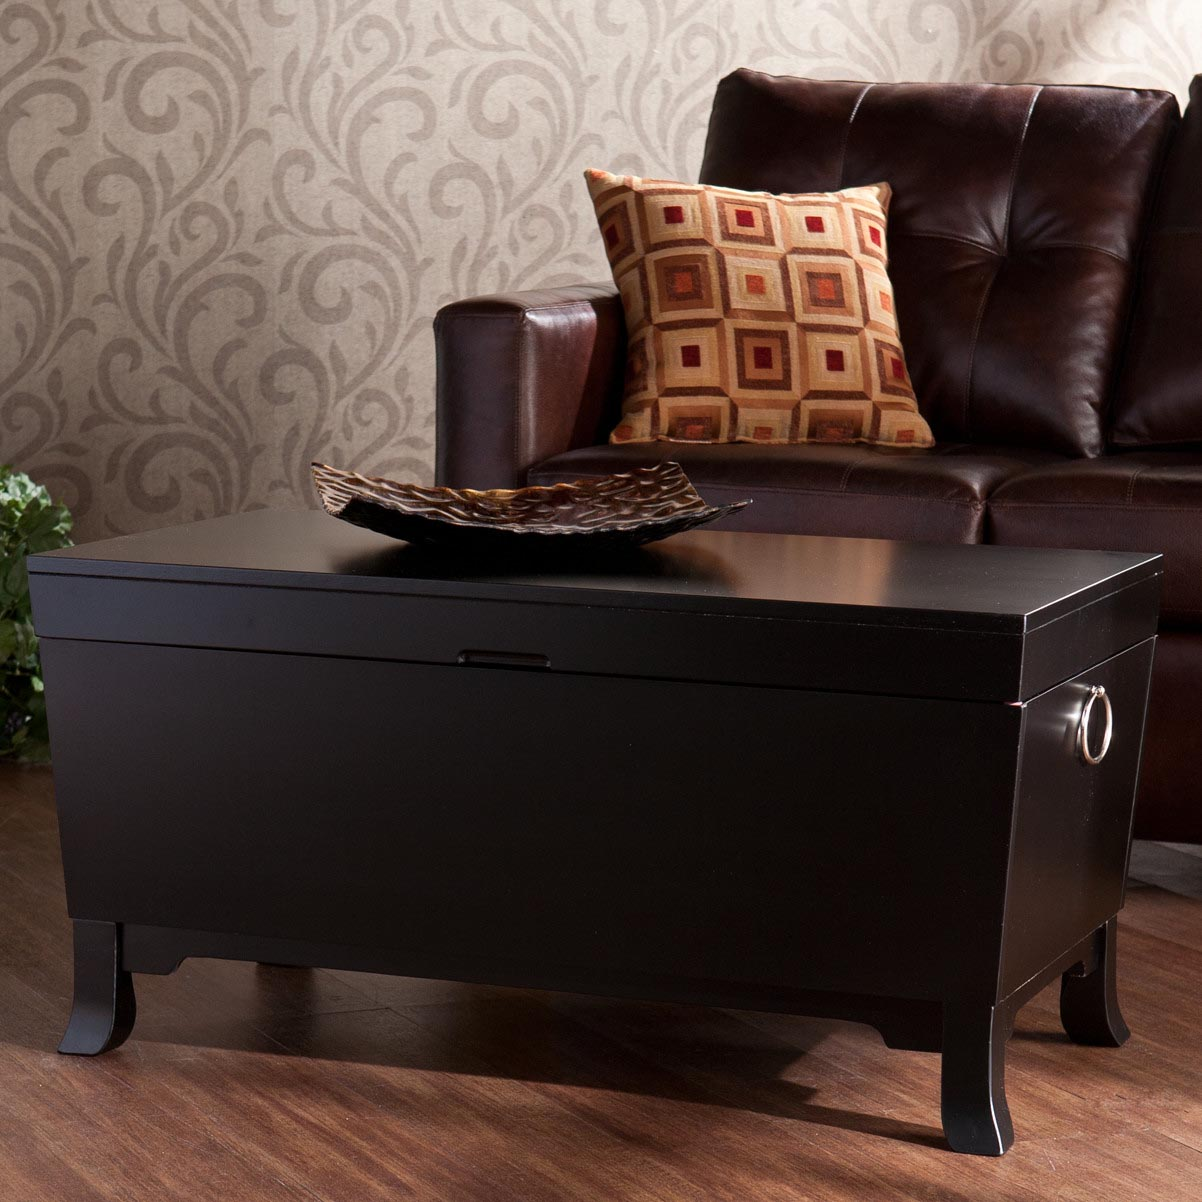 Start making chest coffee table coffee table design ideas chest coffee table lift top geotapseo Image collections